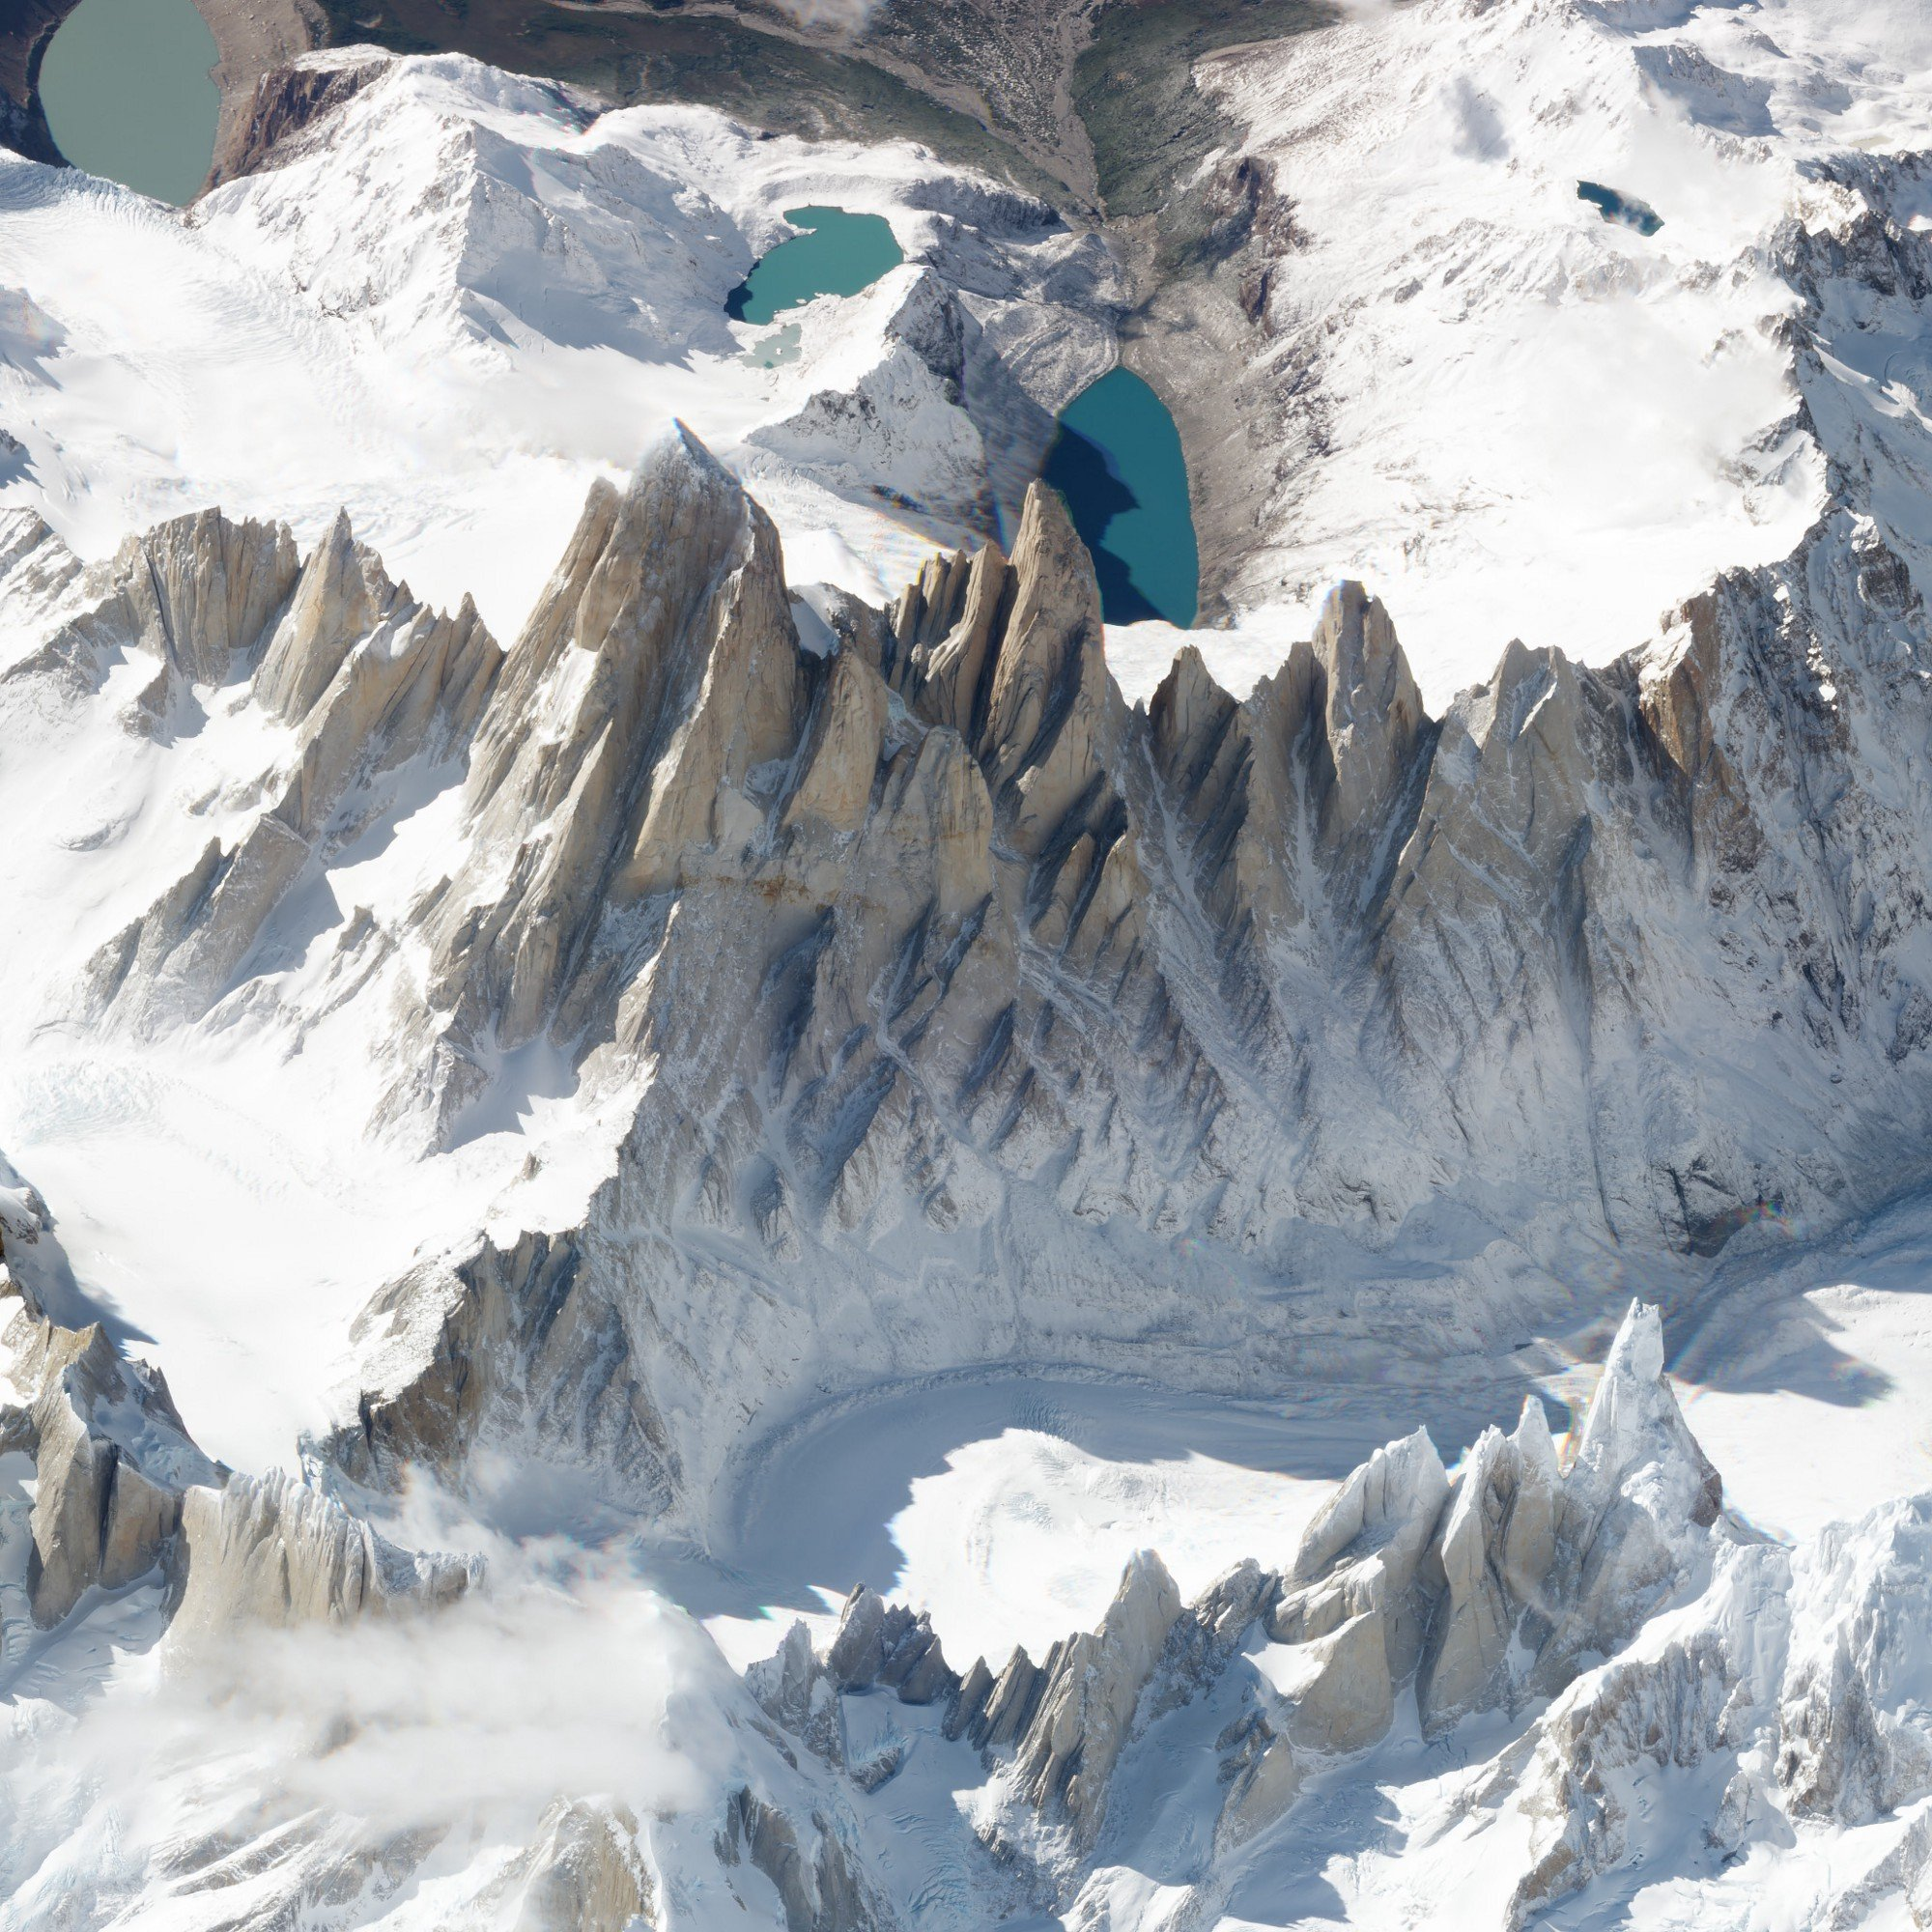 Oblique view of Monte Fitz Roy. March 19, 2018. SkySat. Image ©2018 Planet Labs, Inc. cc-by-sa4.0.